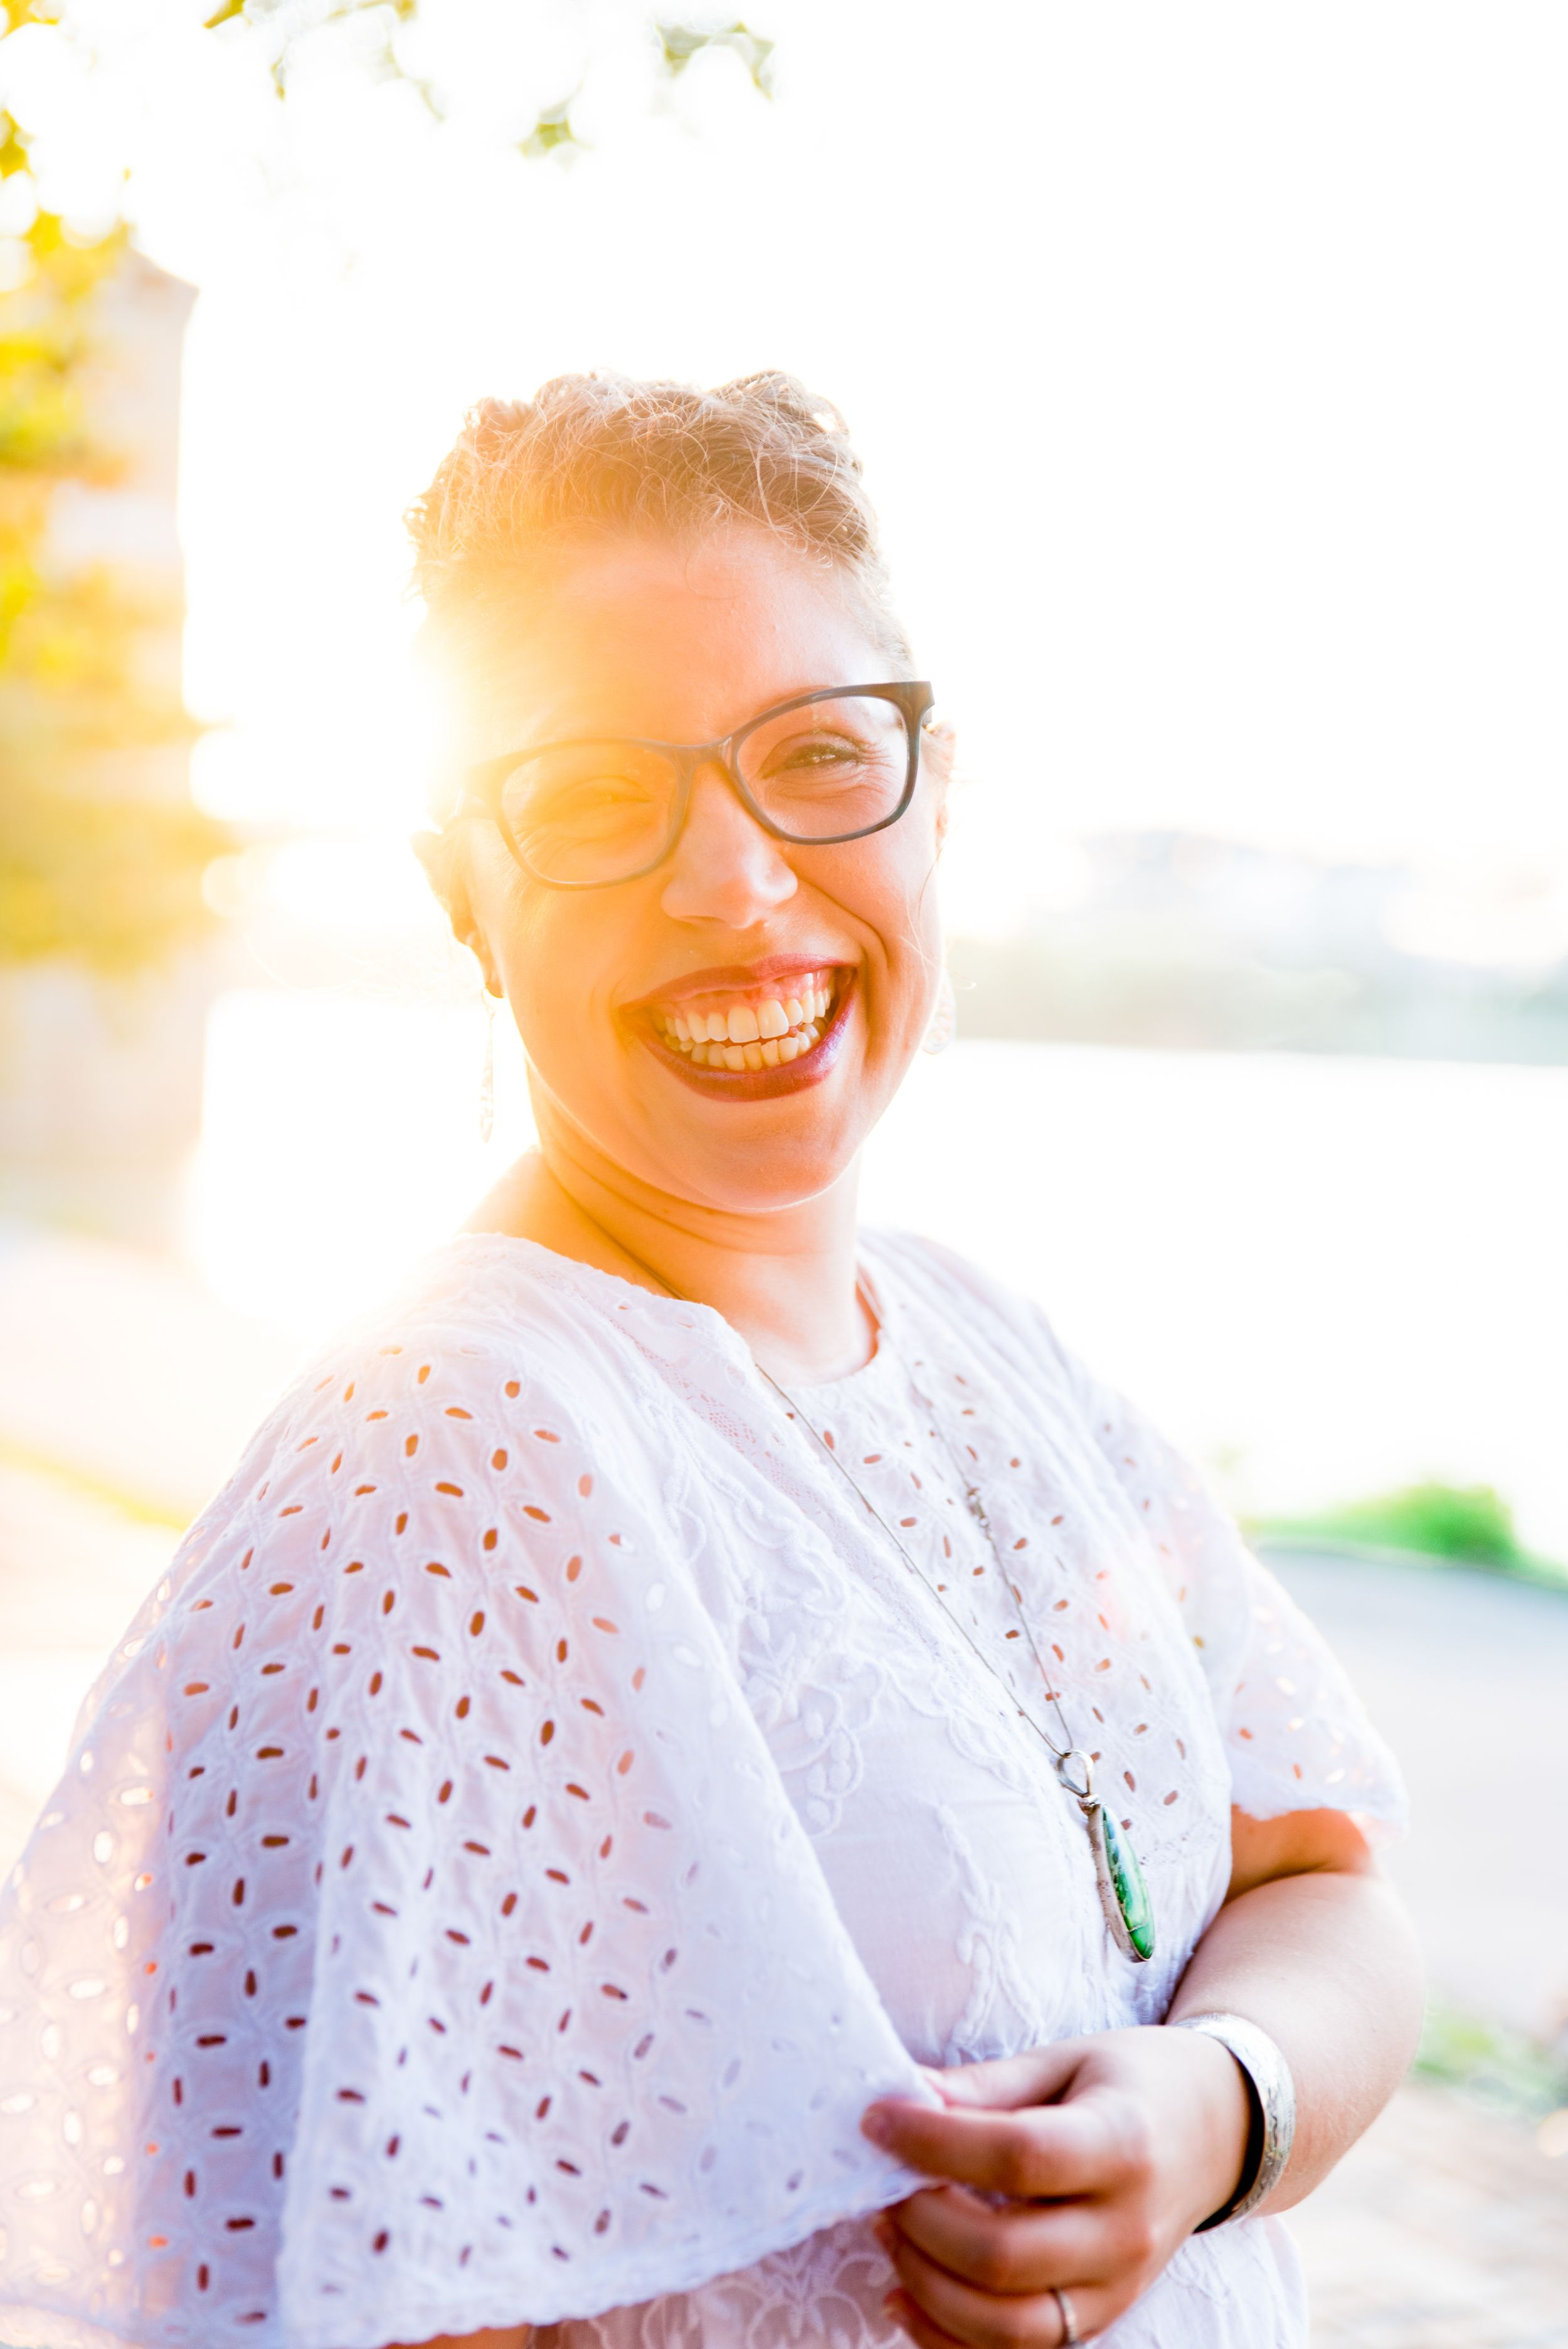 woman in white shirt, red lipstick, and glasses laughs and smiles in front of Roebling Bridge at sunset